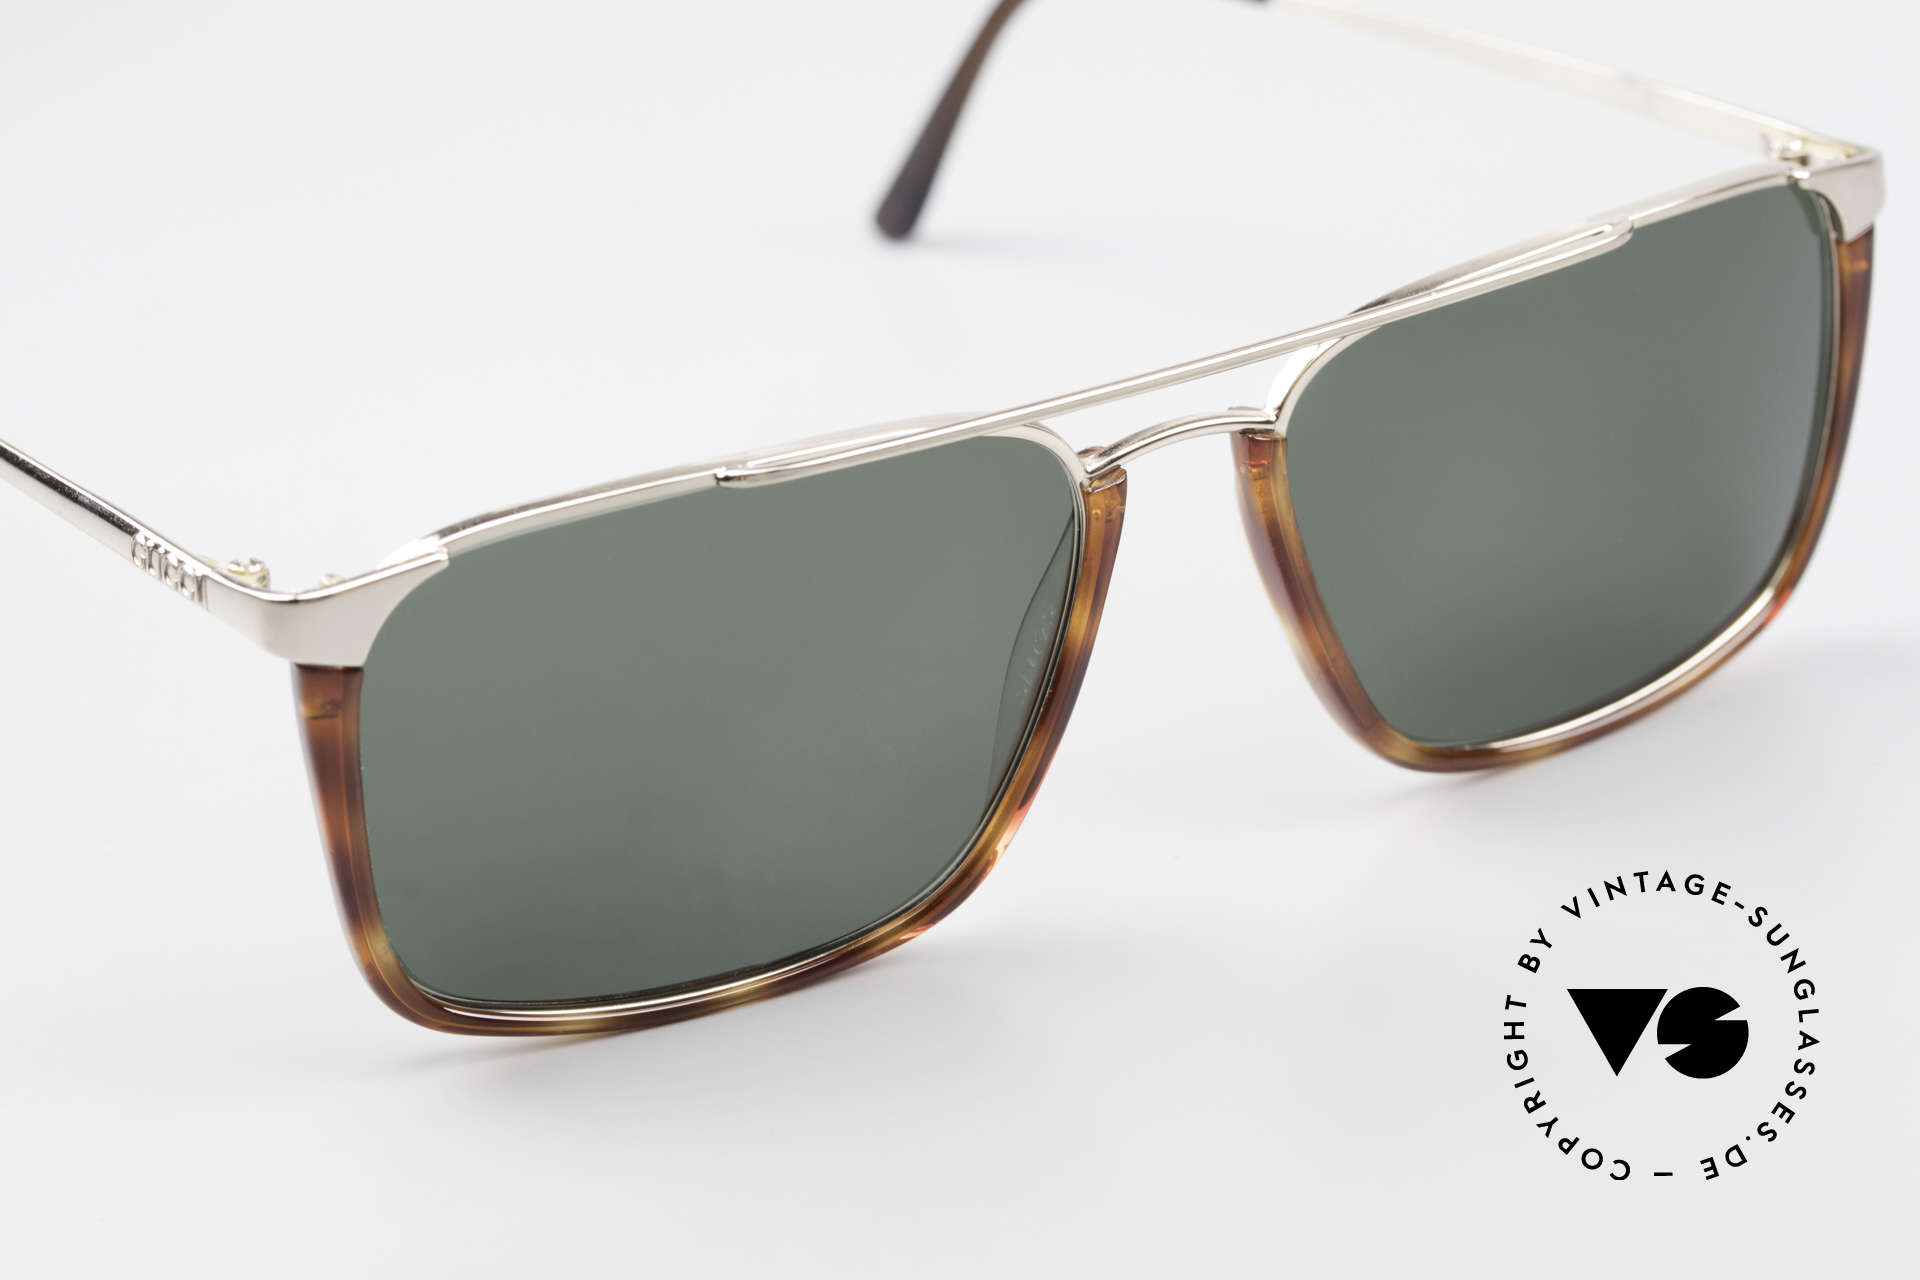 Gucci 1307 Rare 90's Designer Sunglasses, never worn (like all our vintage Gucci specs), Made for Men and Women